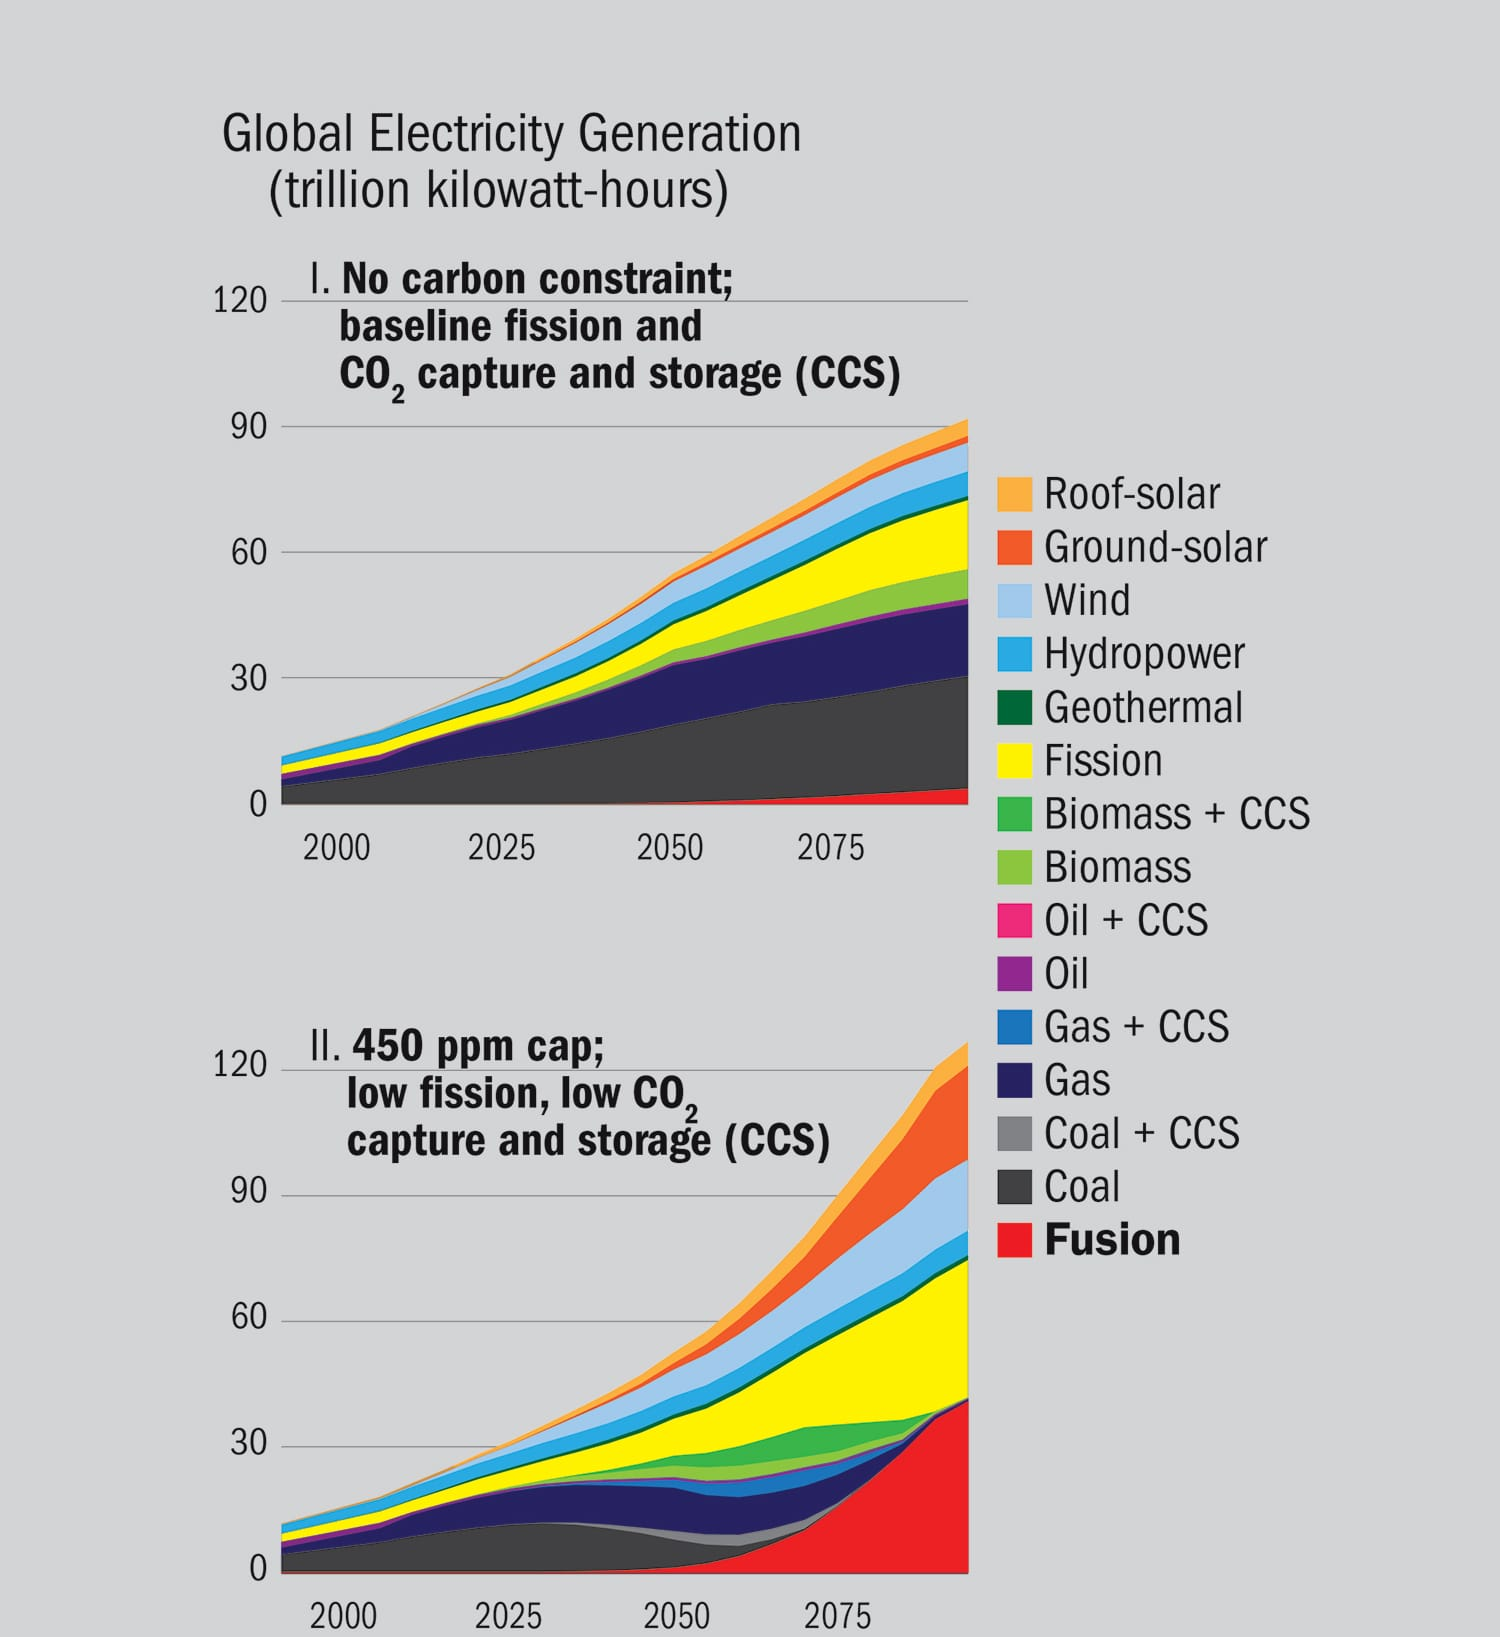 Production of global electricity in the 21st century when fusion is an option, by energy source. Above: Unfavorable to fusion: no carbon policy; fission and carbon dioxide capture and storage (CCS) are fully available. Below: Favorable to fusion: a 450 parts per million climate target; fission and CCS are constrained. Source: [3].